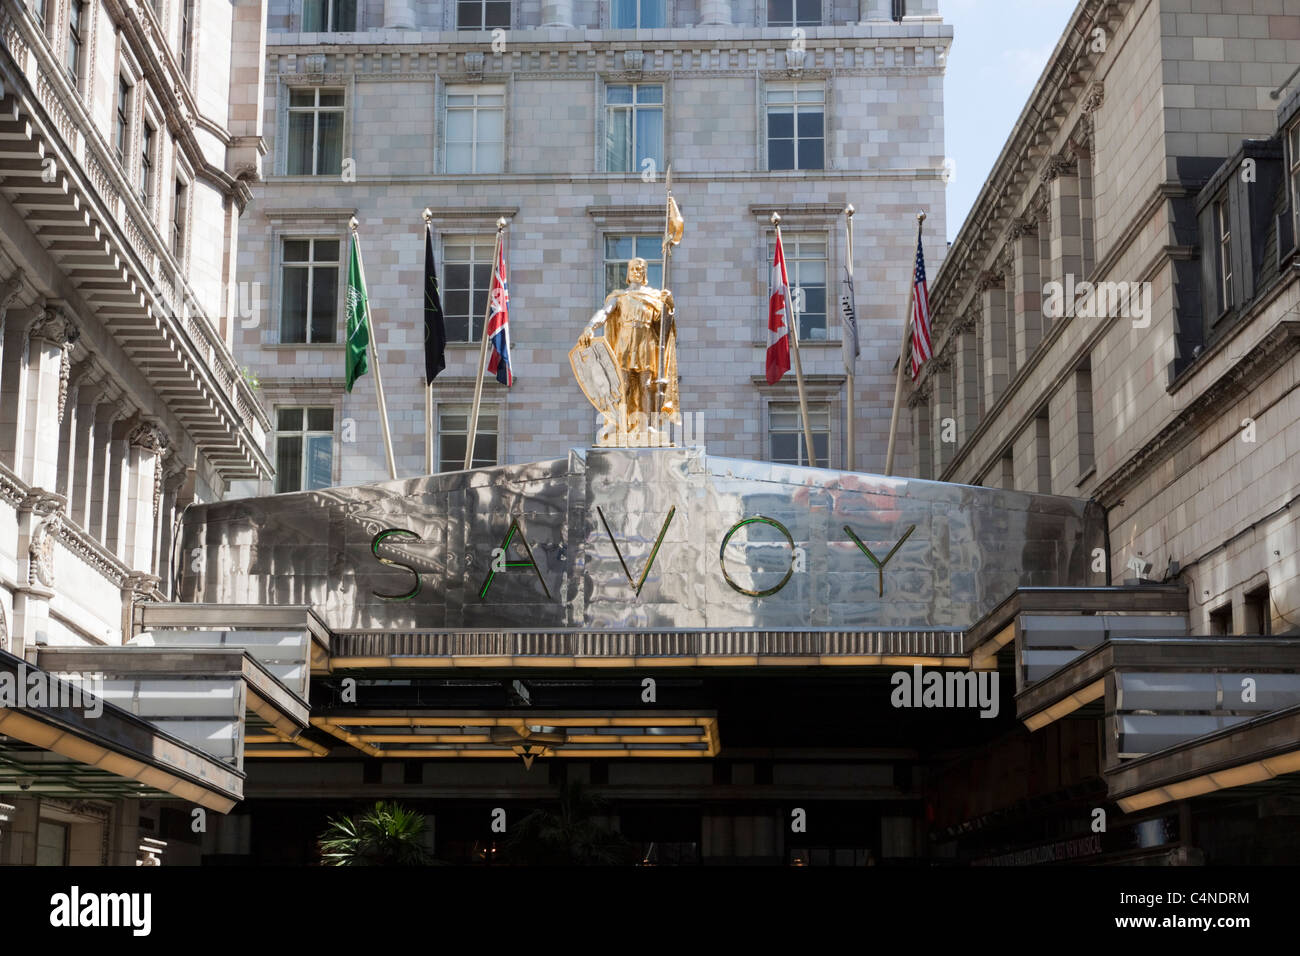 The Savoy hotel, the Strand, London, England - Stock Image